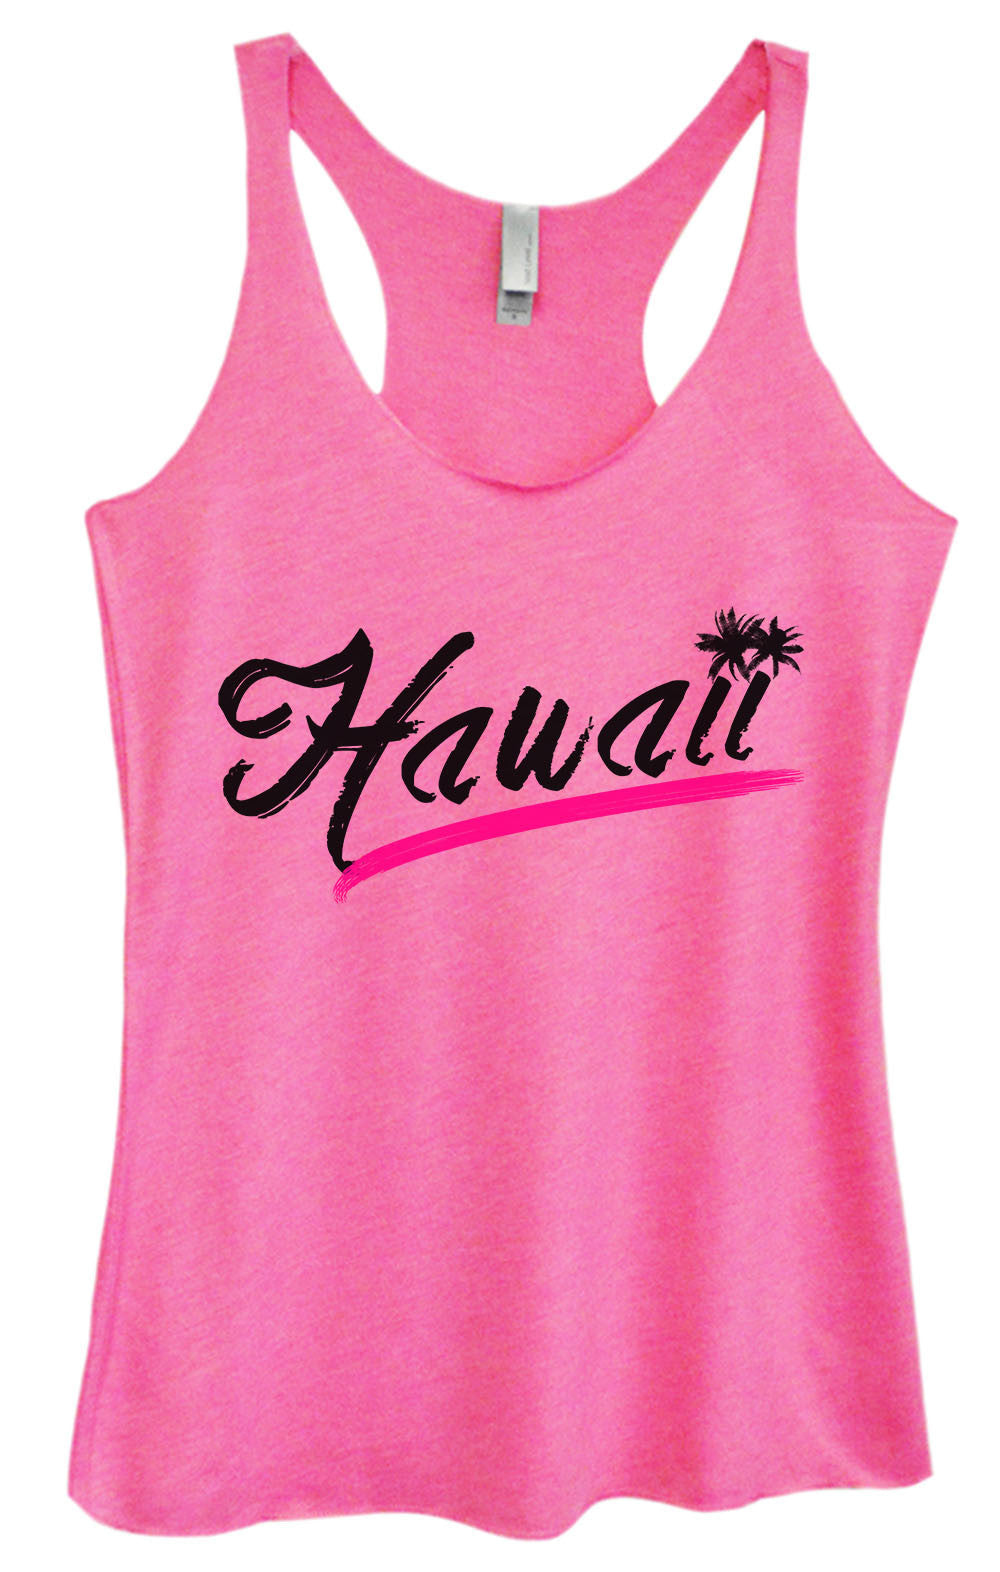 Womens Fashion Triblend Tank Top - Hawaii - Tri-1392 - Funny Shirts Tank Tops Burnouts and Triblends  - 1